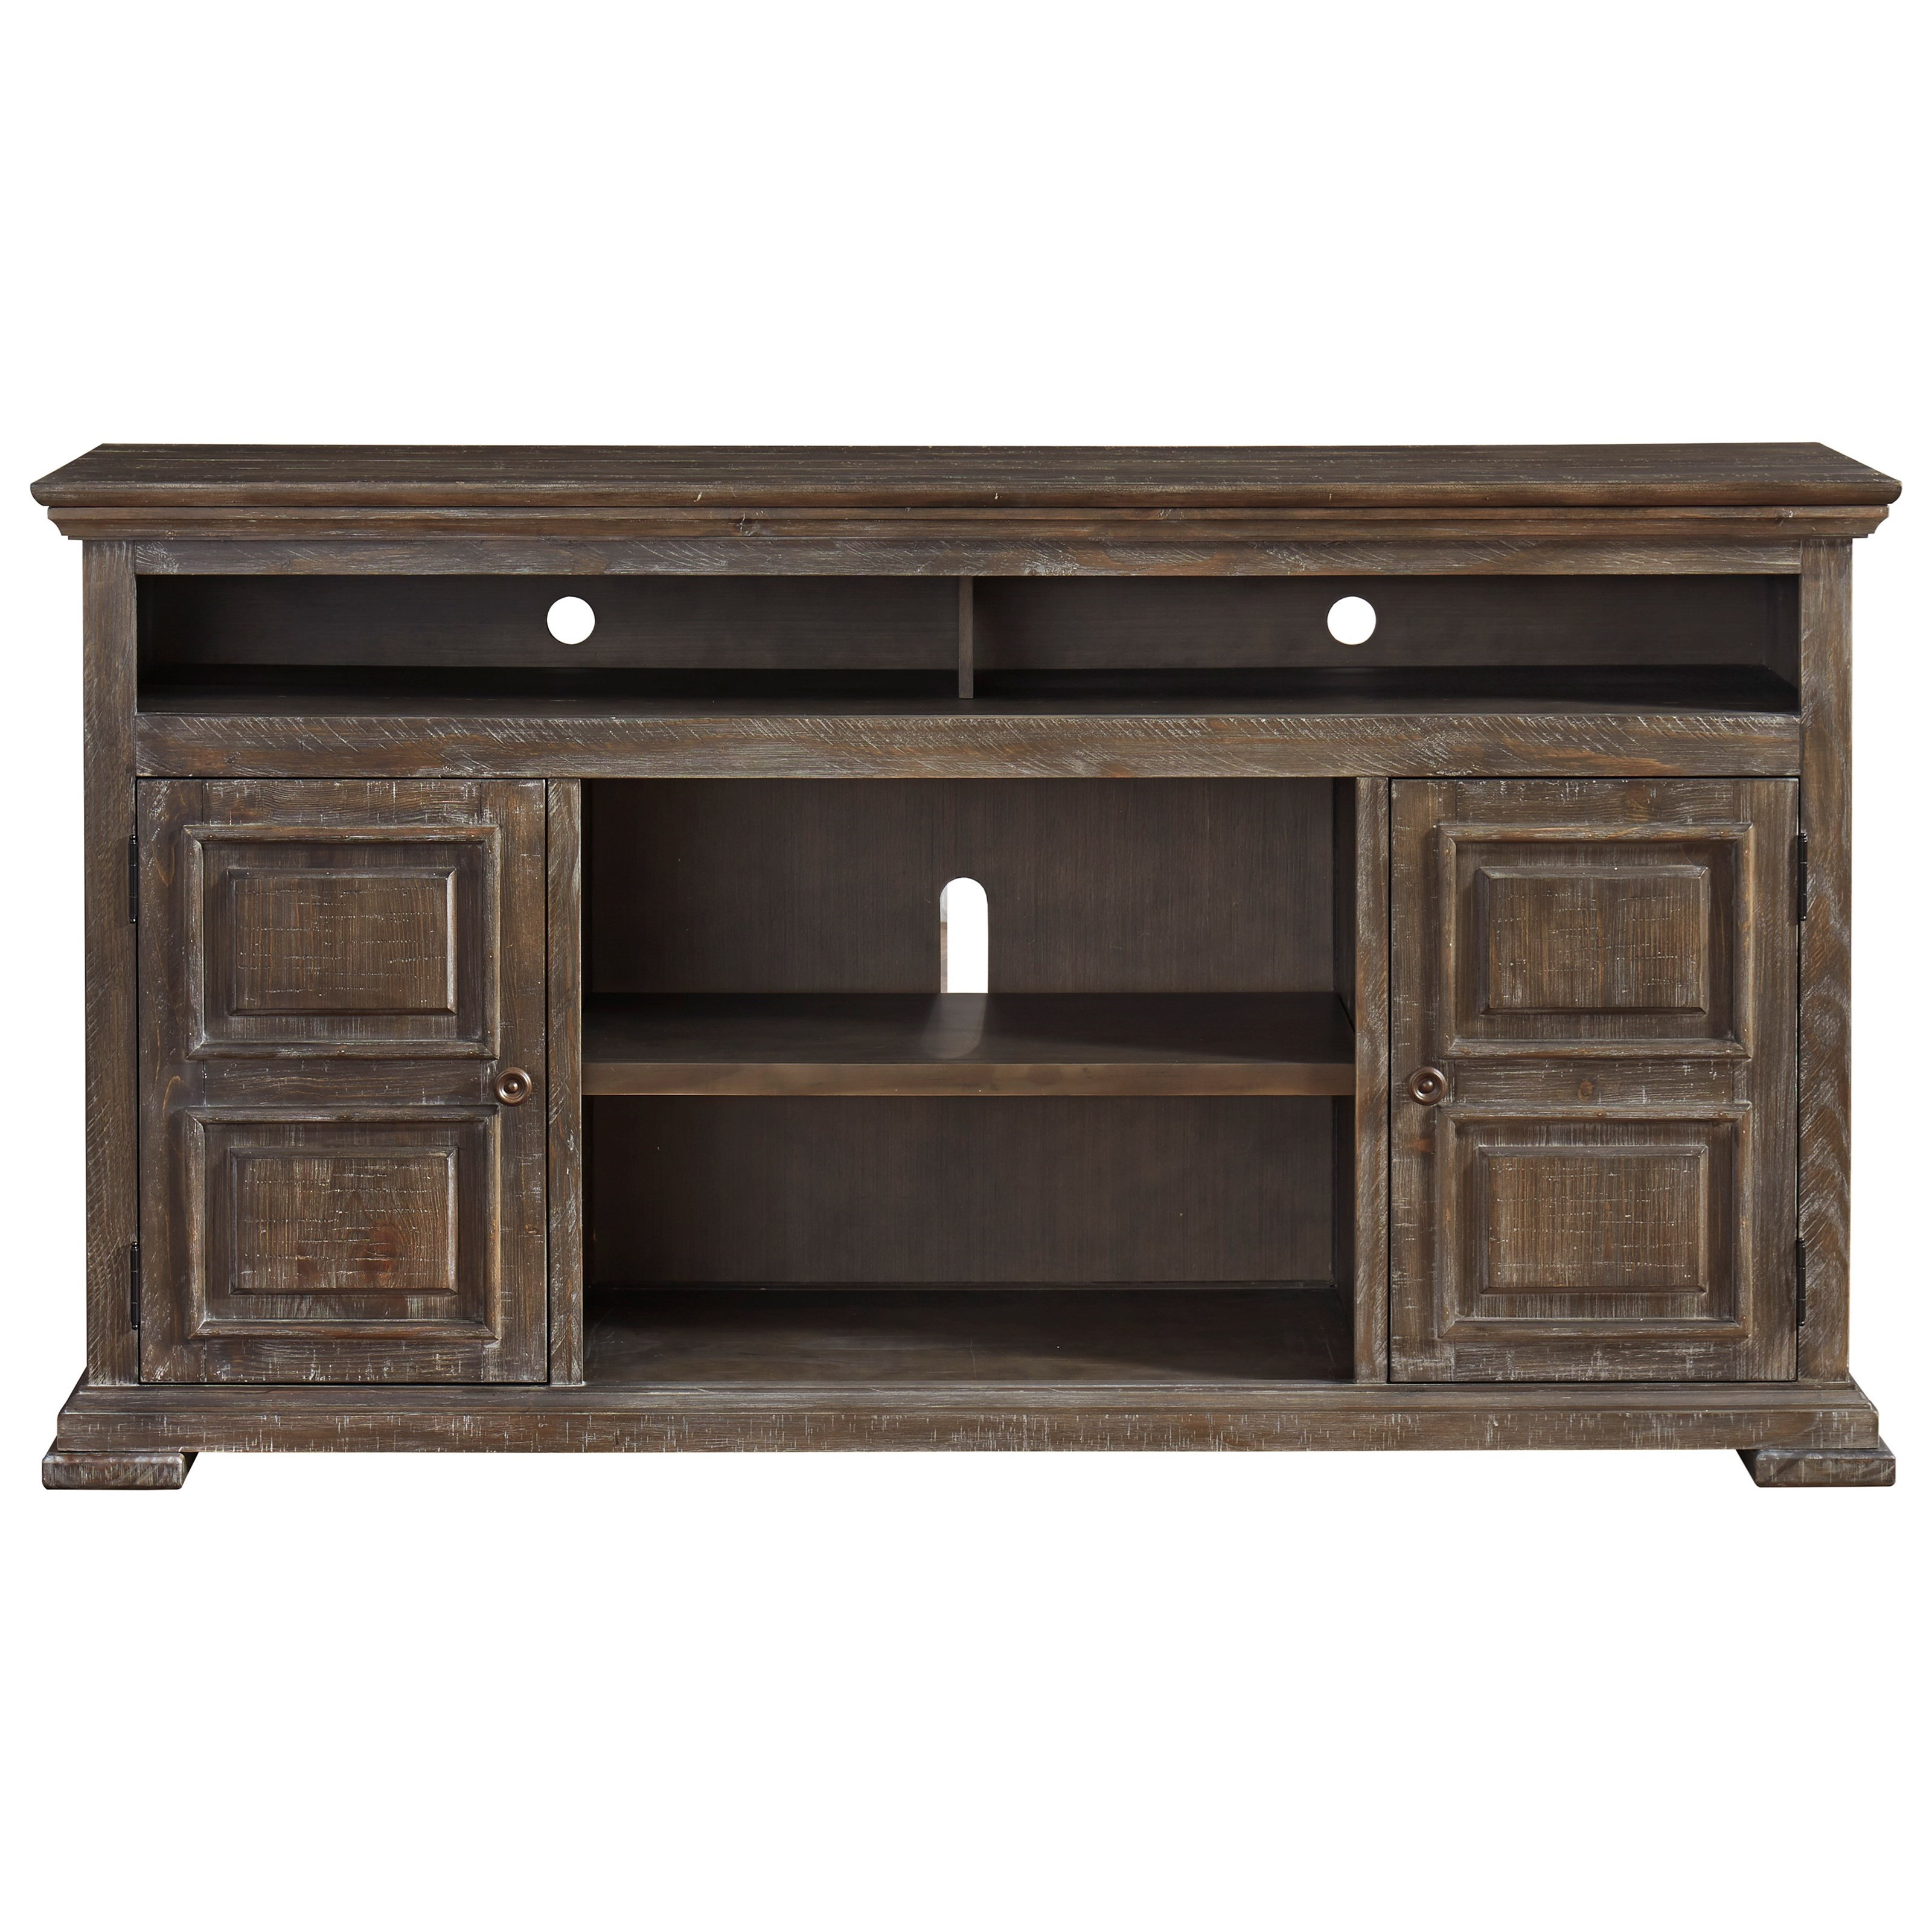 Wyndahl XL TV Stand by Signature Design by Ashley at Northeast Factory Direct